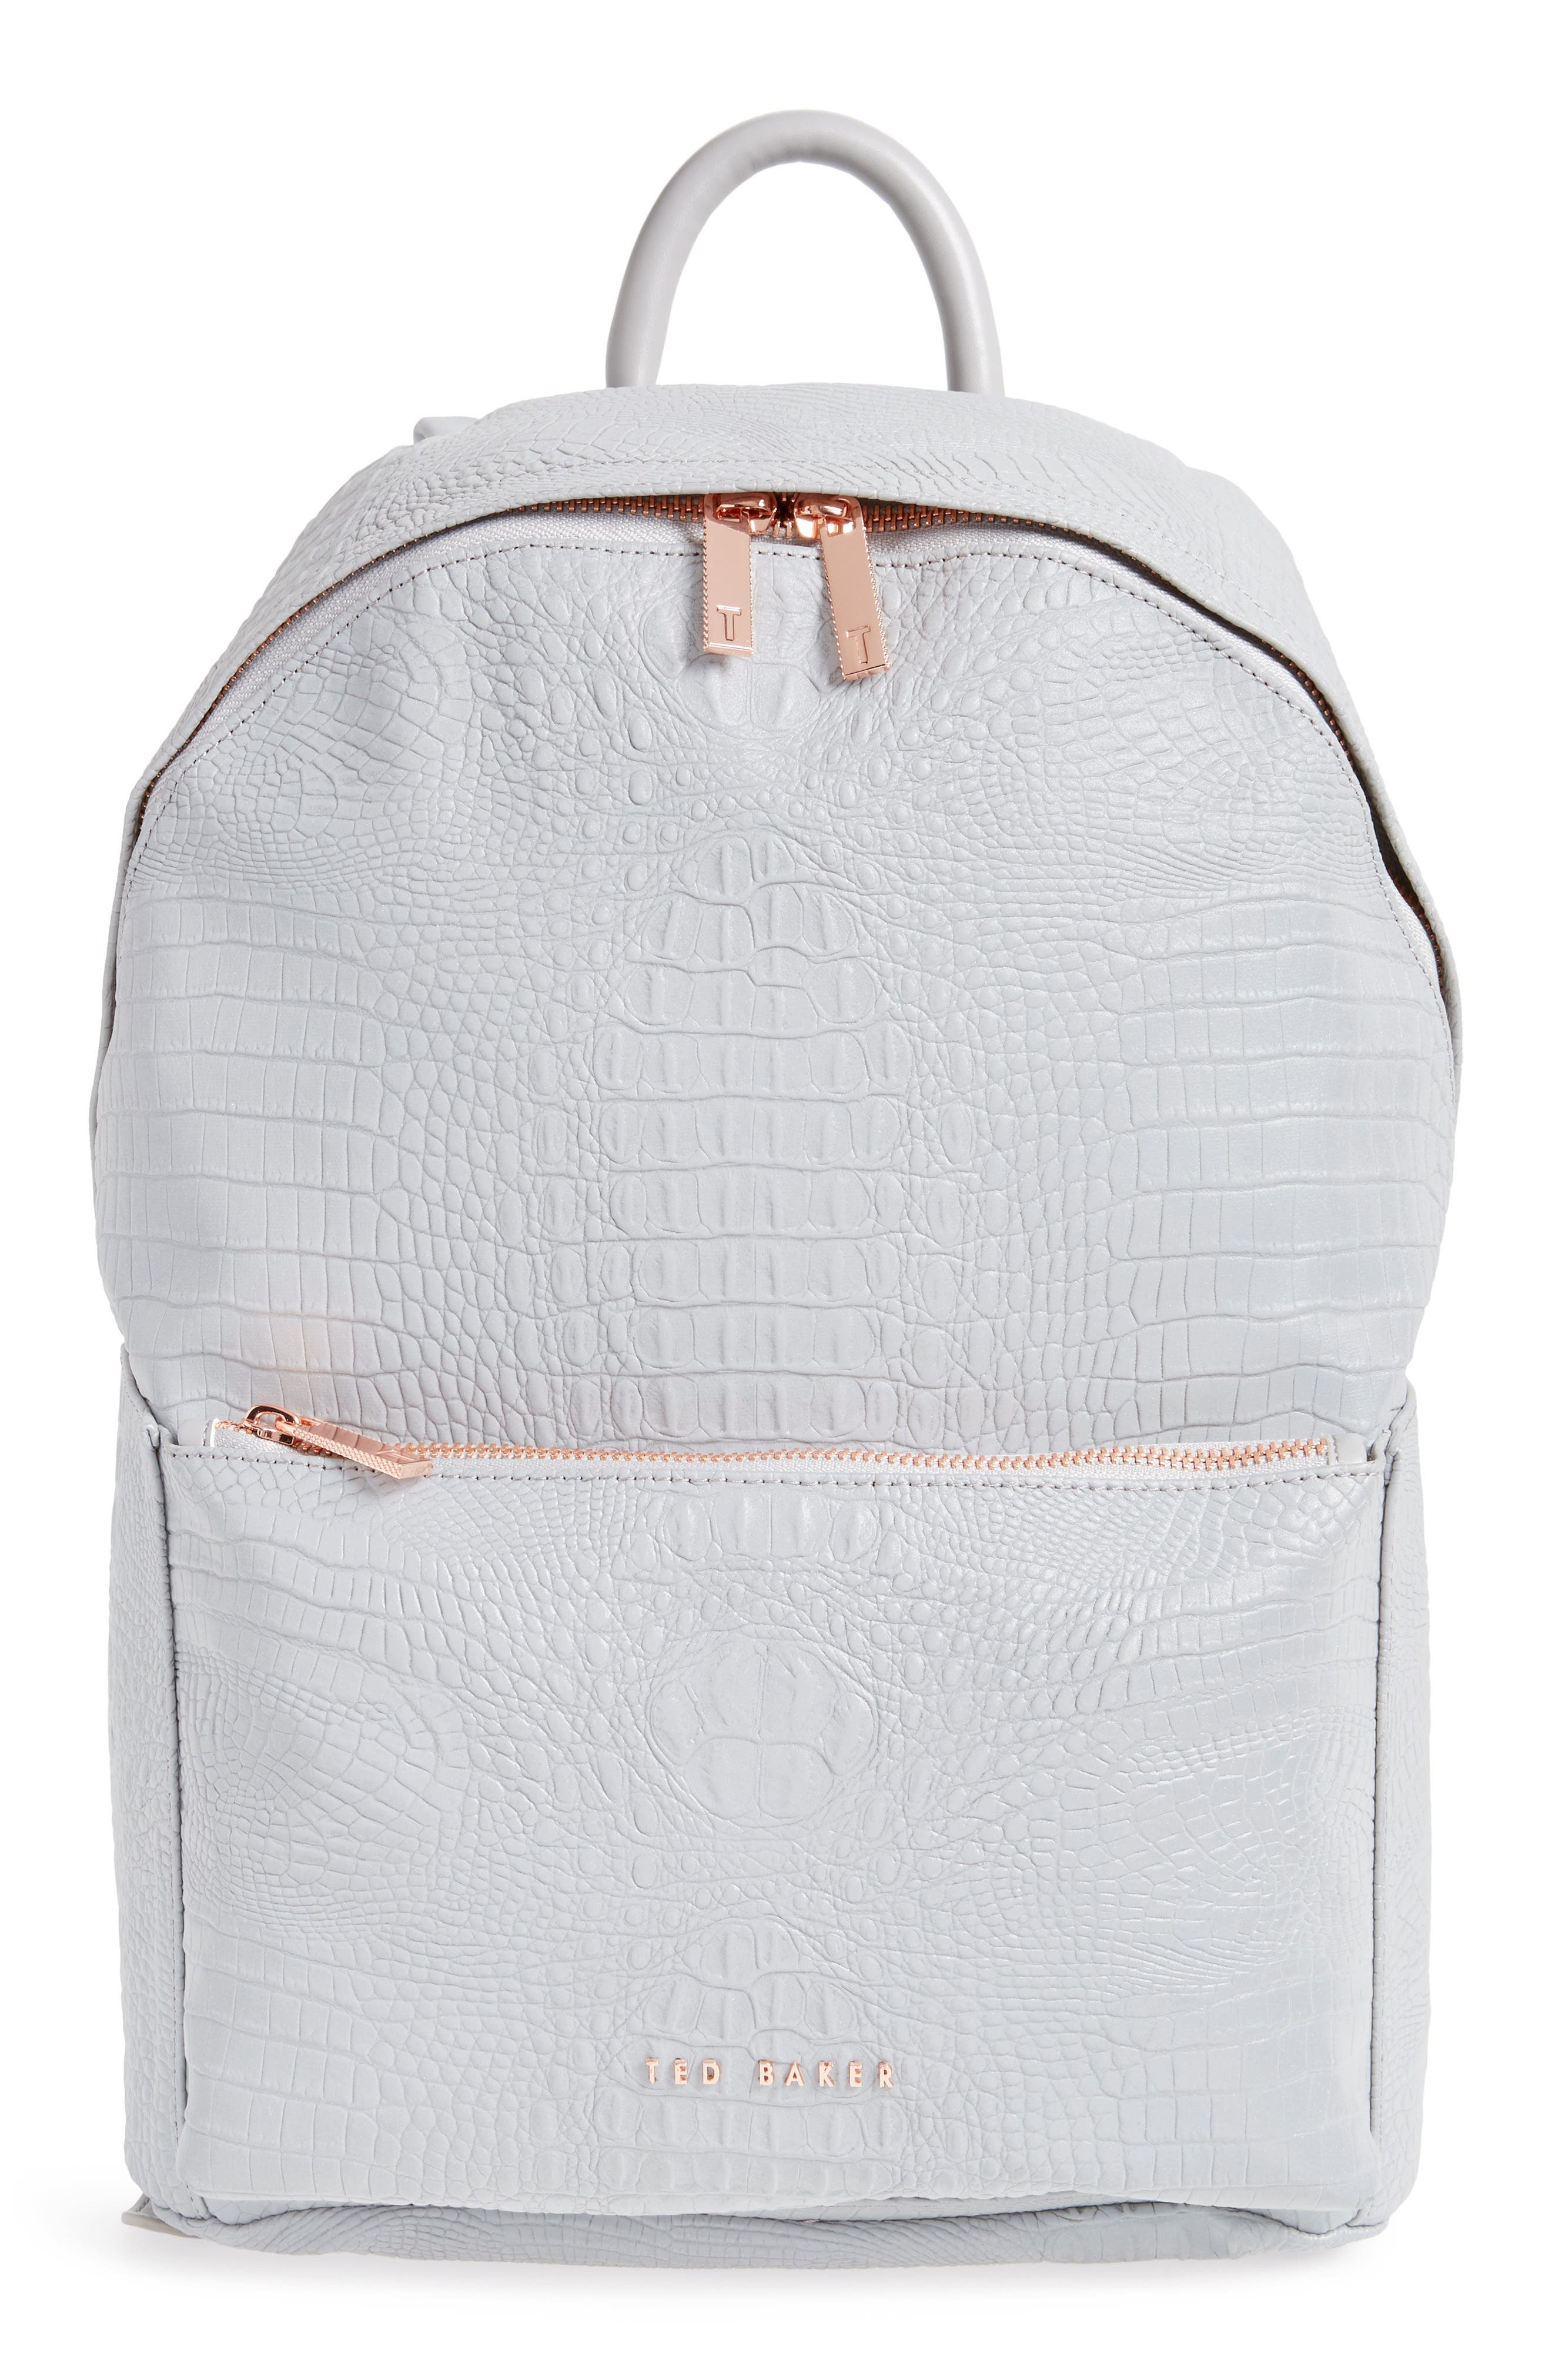 Rahri Reflective Croc Embossed Faux Leather Backpack,                             Main thumbnail 1, color,                             050